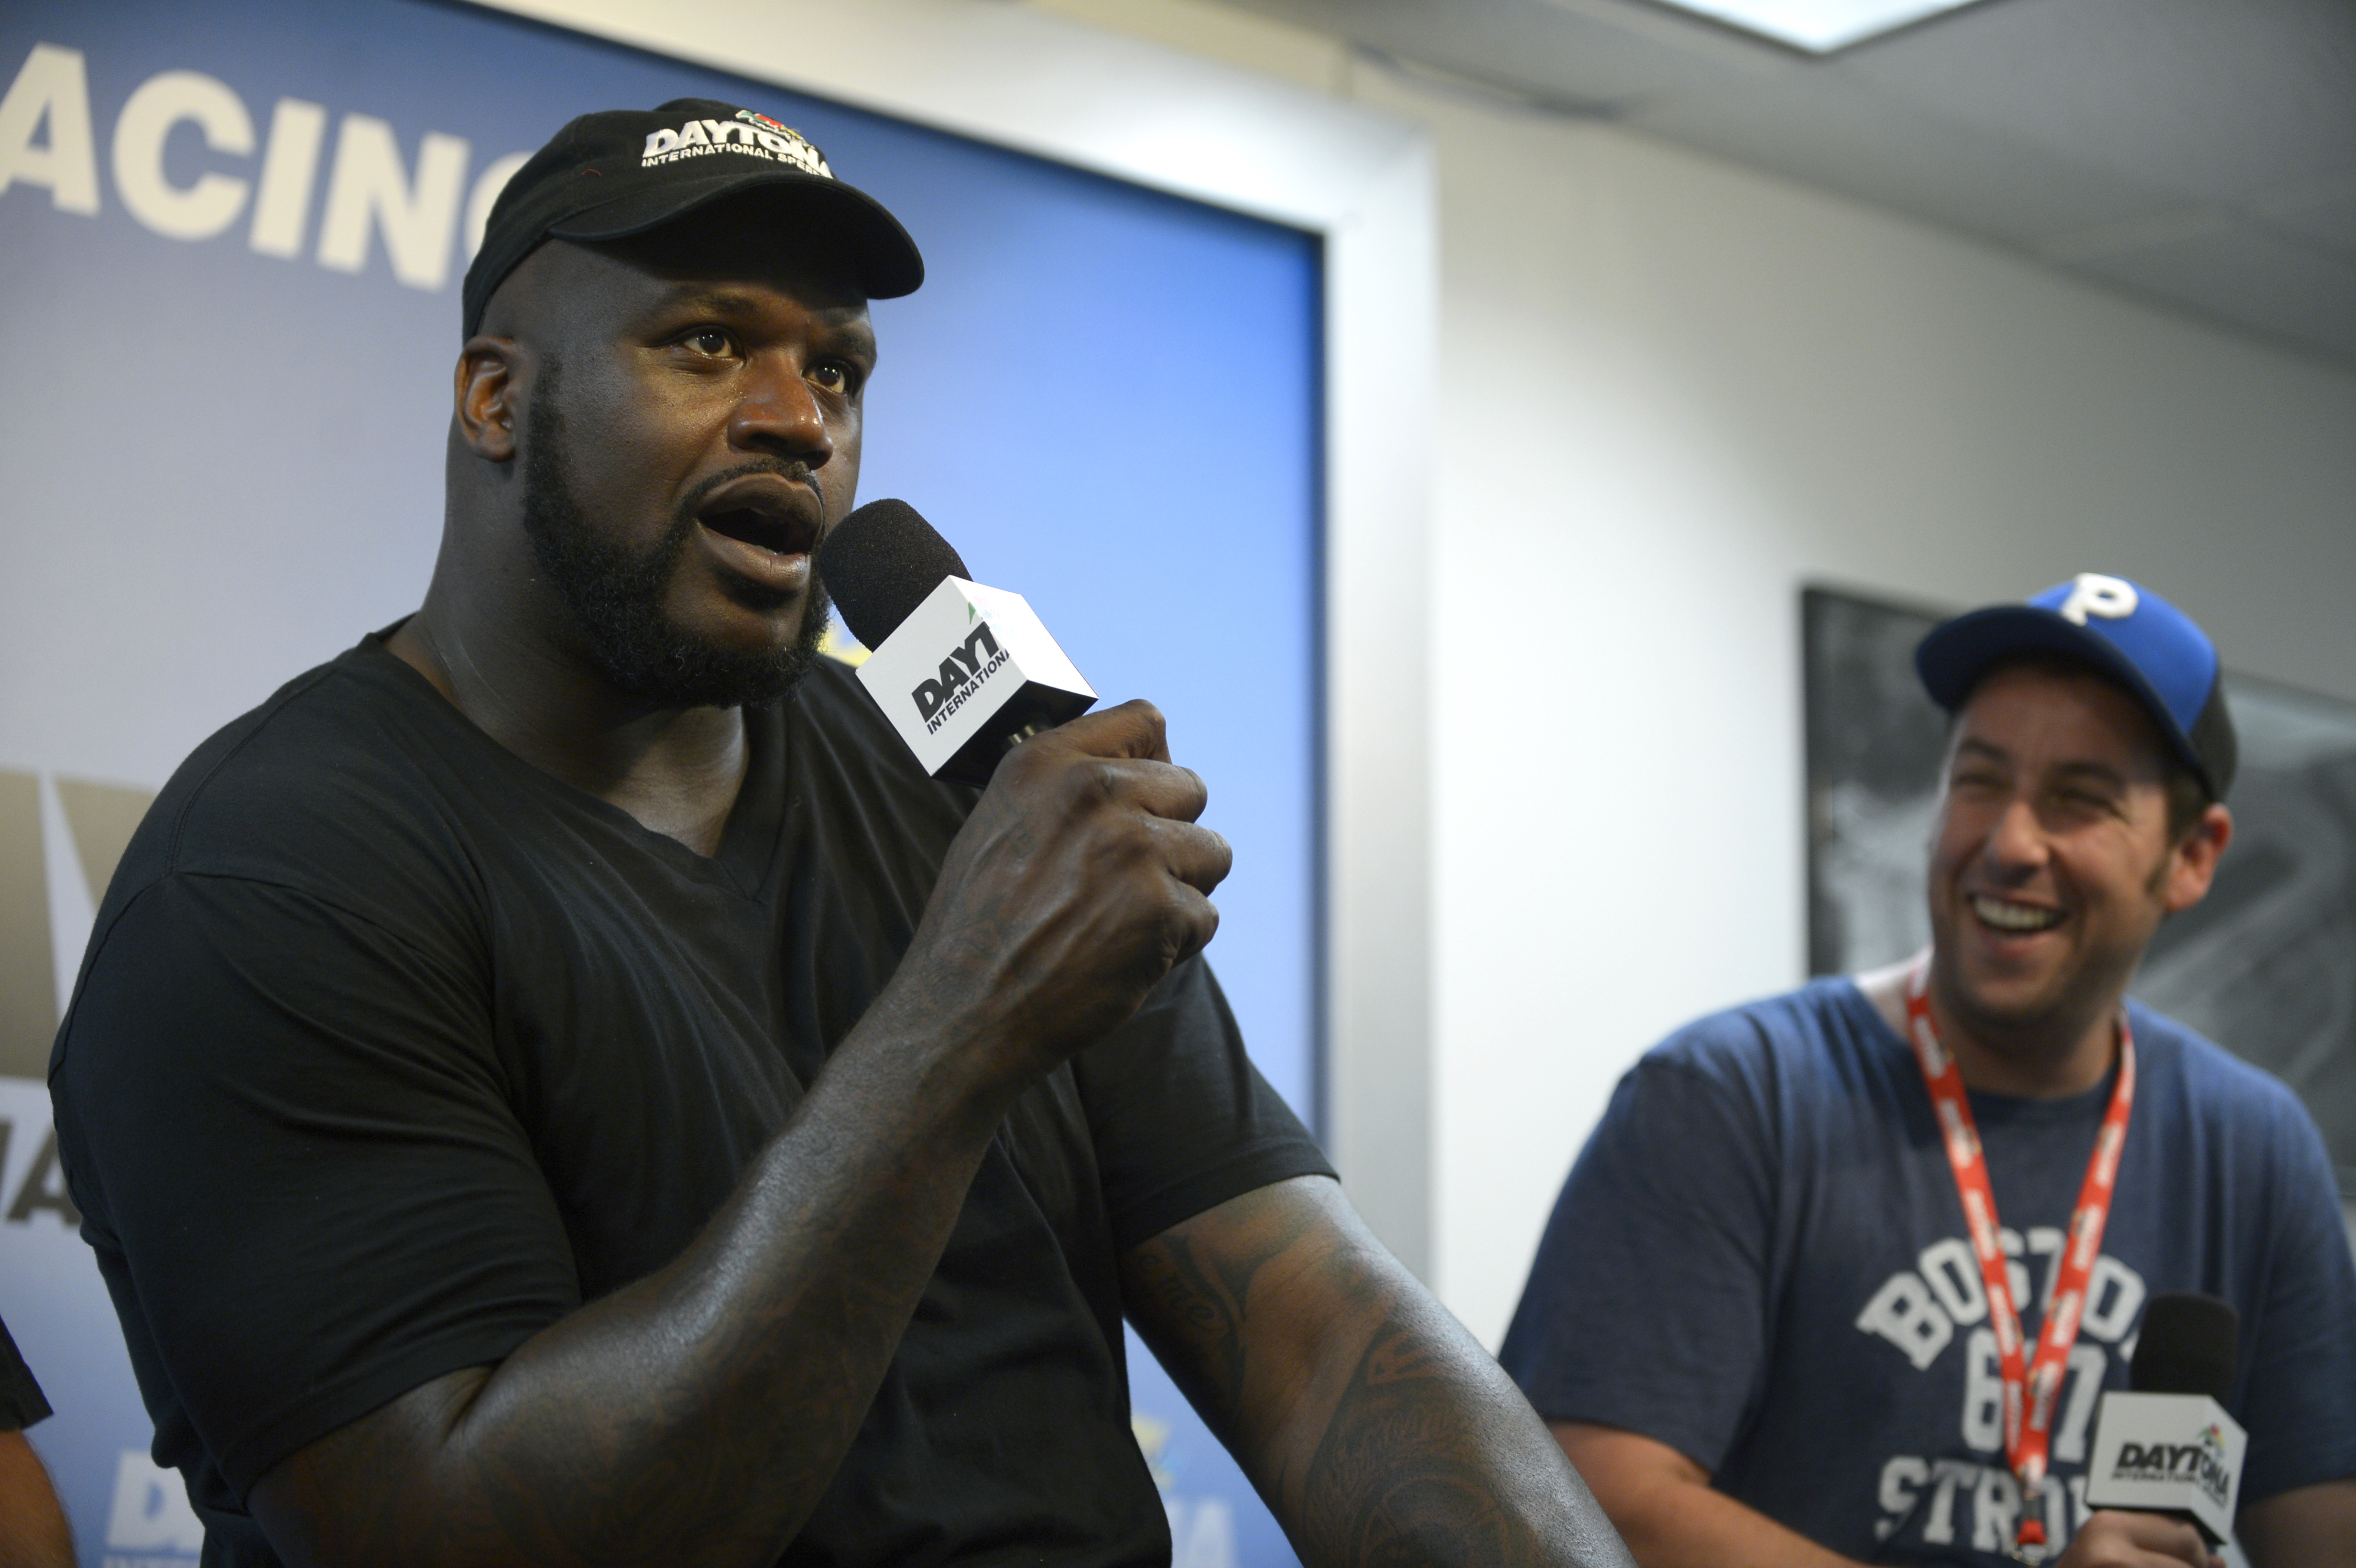 Gilmore with fellow sports star Shaquille O'Neal